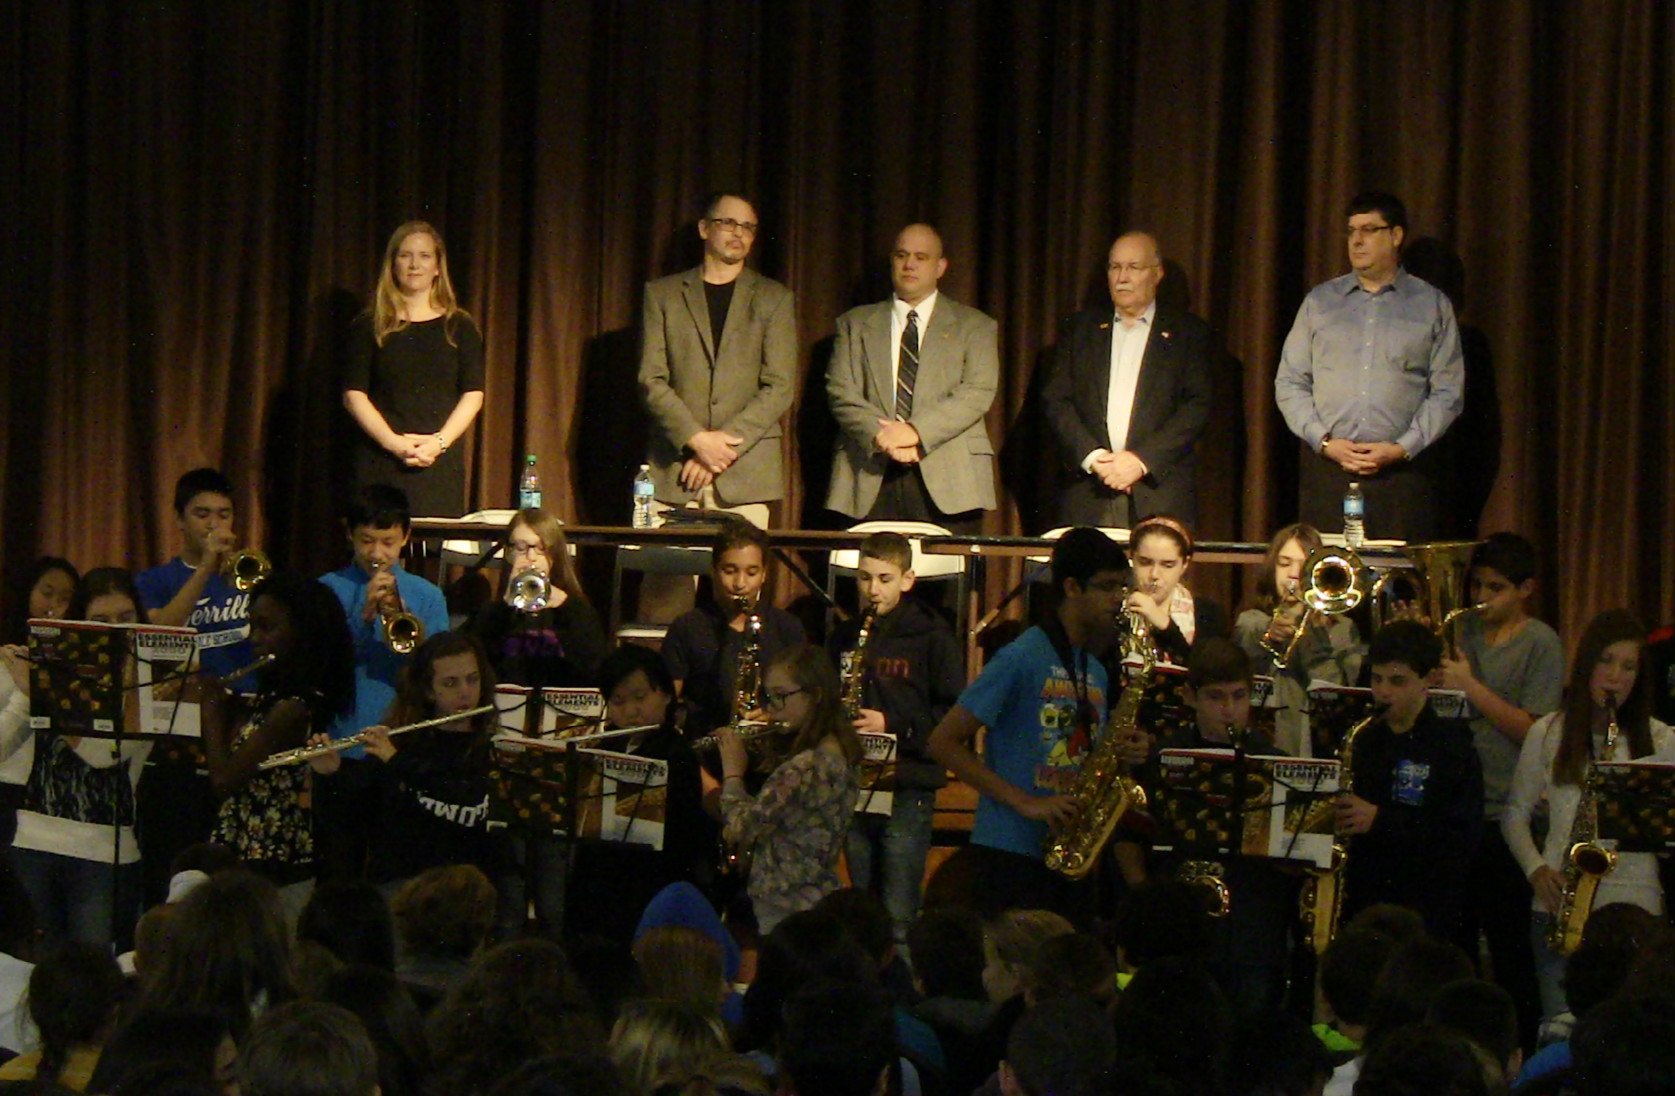 1cc4b8b1dbe9759481eb_8th_grade_band_welcomes_Vets_11-10-14.jpg